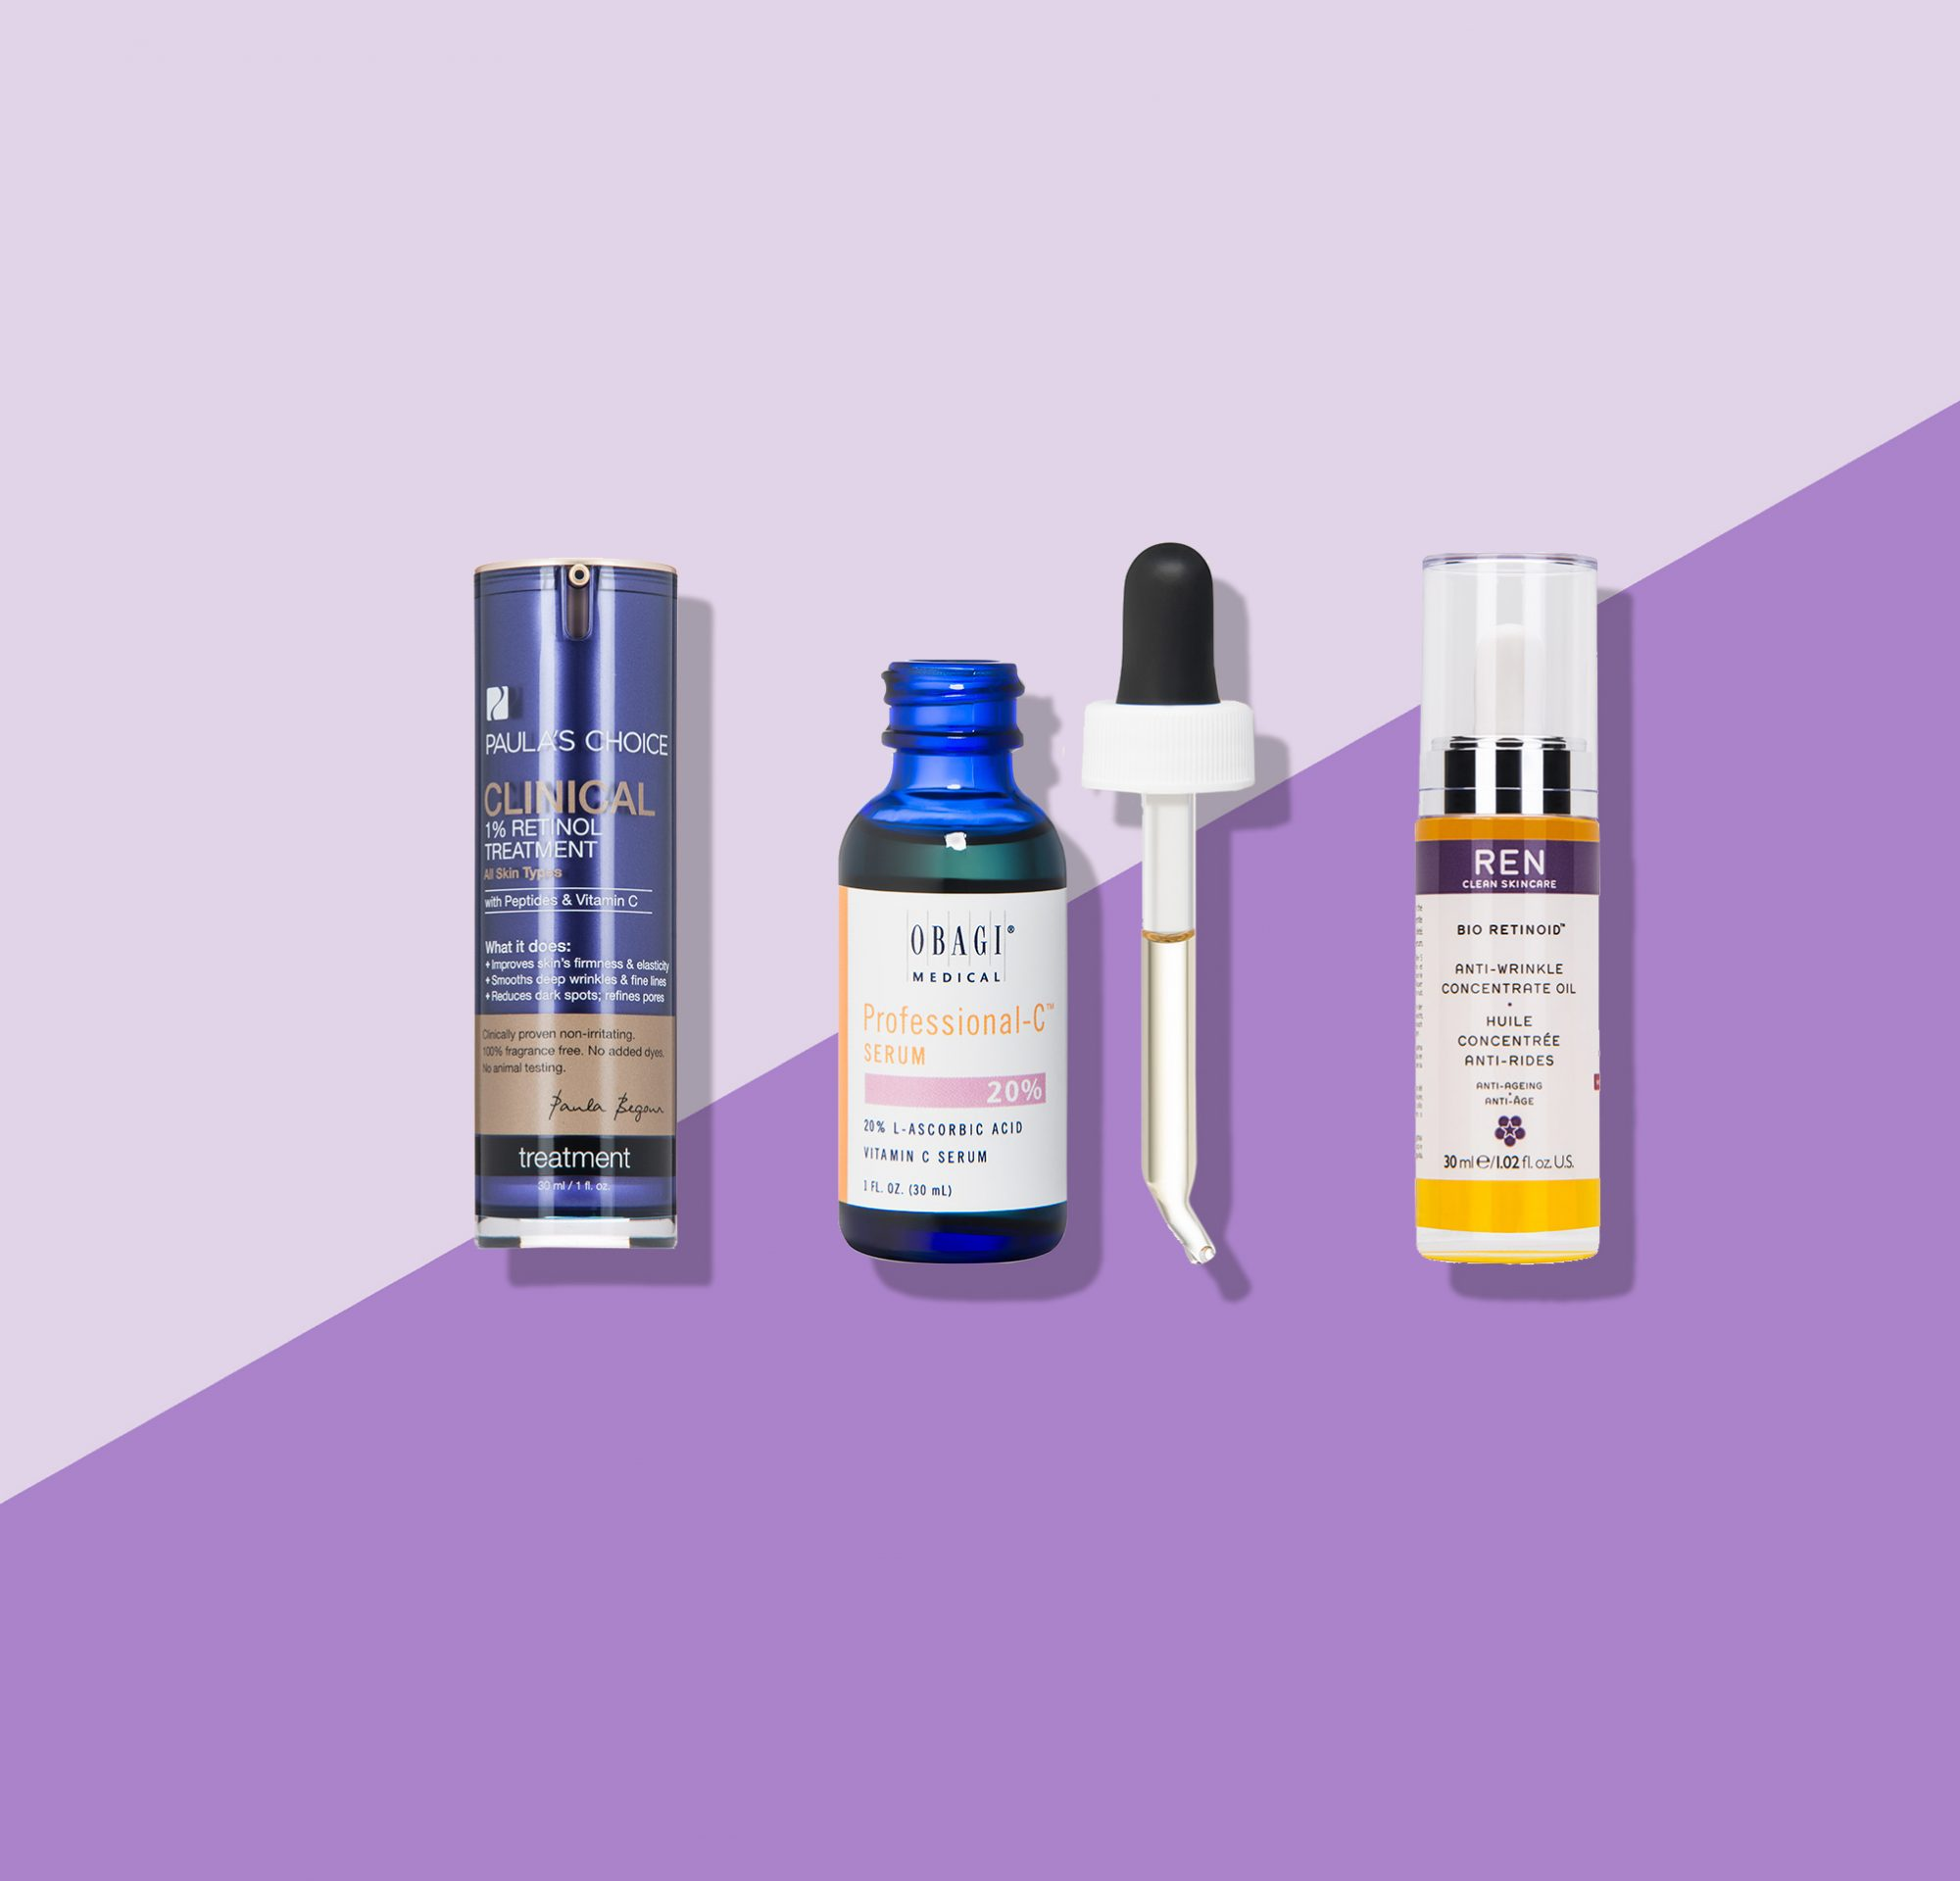 dermstore-anti-aging-products-sale-1